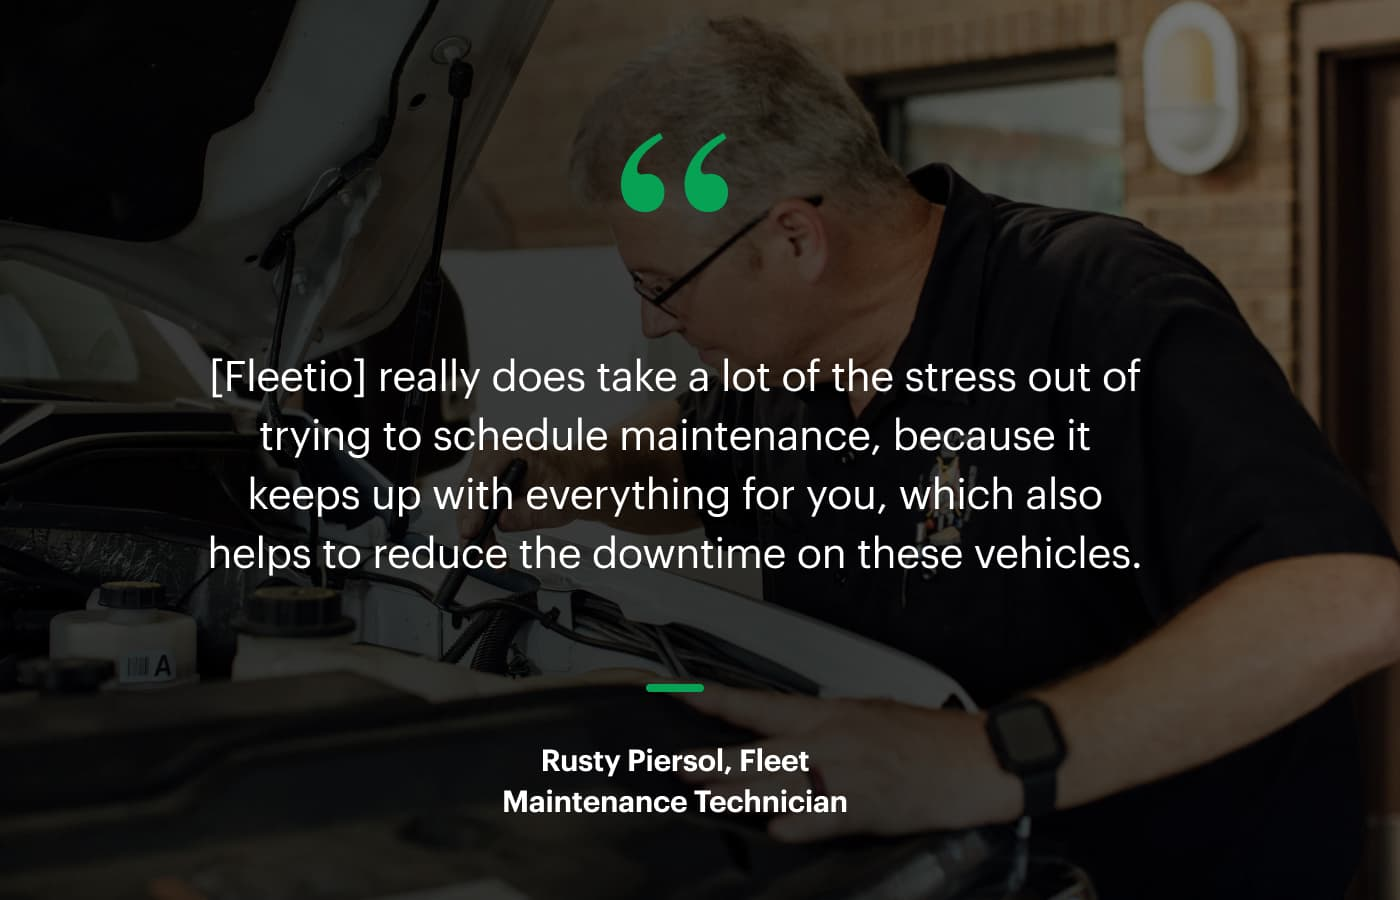 """""""[Fleetio] really does take a lot of the stress out of trying to schedule maintenance, because it keeps up with everything for you, which also helps to reduce the downtime on these vehicles."""" – Rusty Piersol, Fleet Maintenance Technician"""